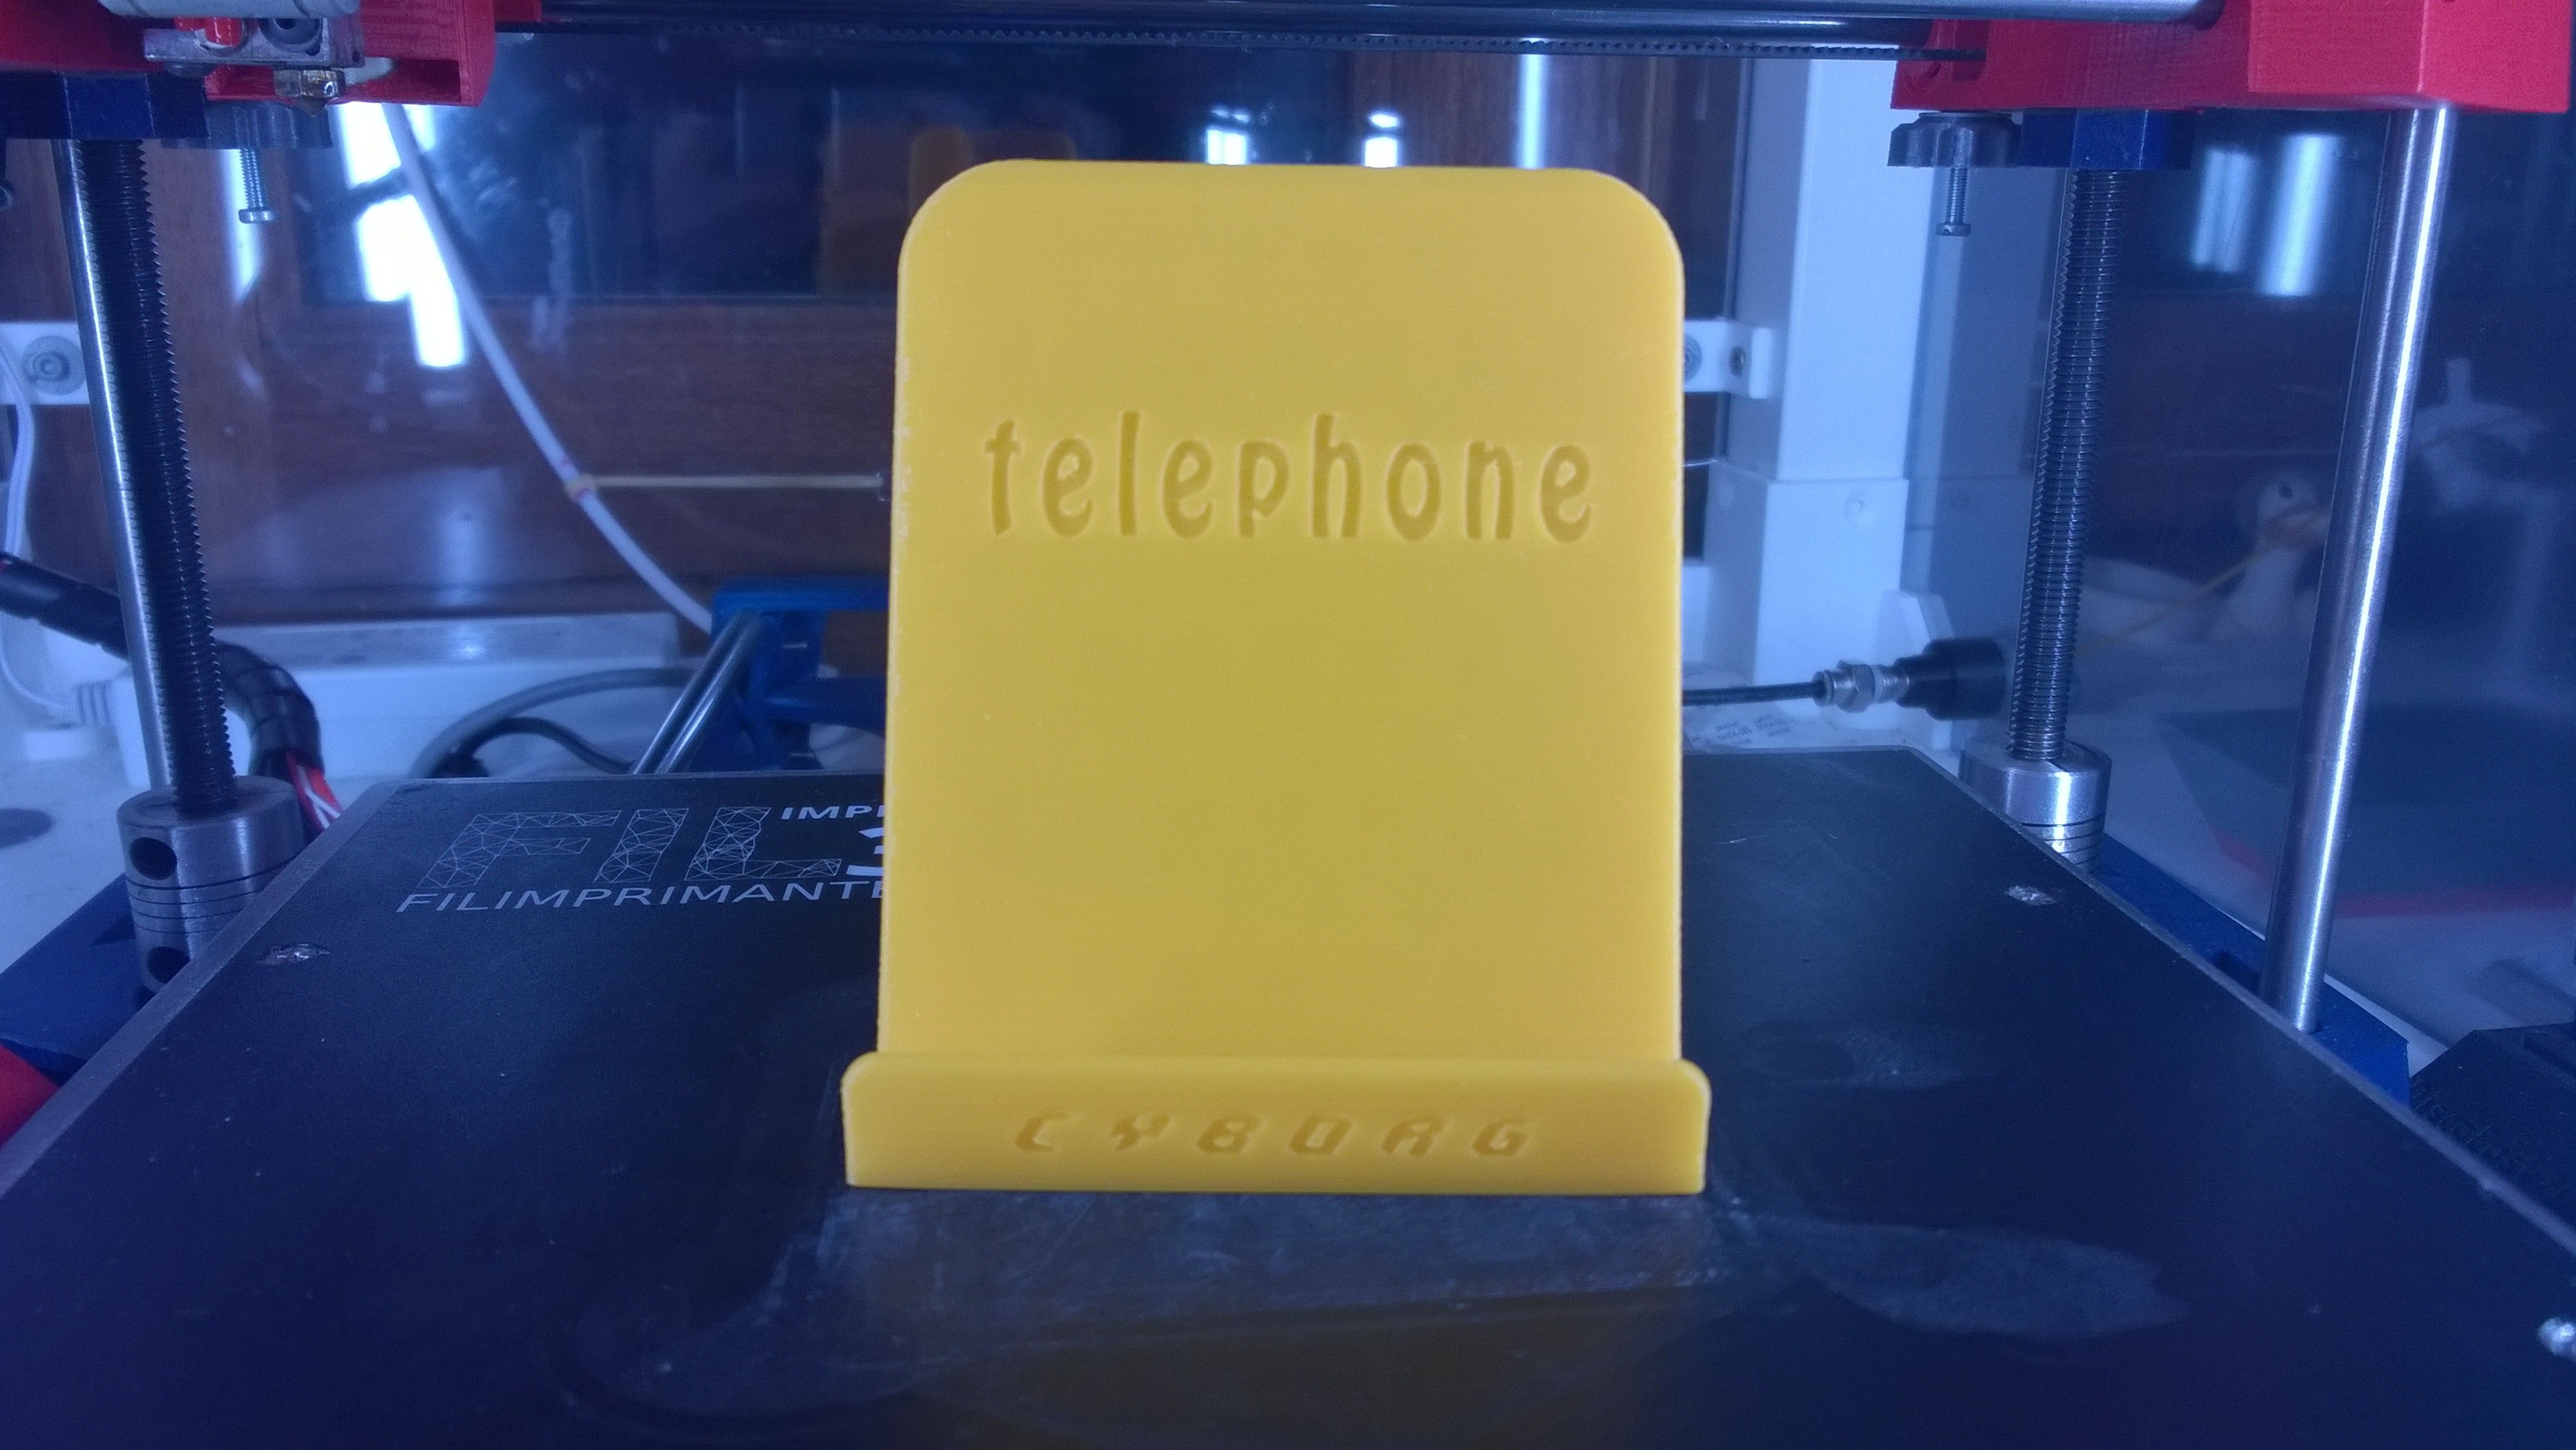 WP_20171115_00_26_05_Pro.jpg Download free STL file Phone support • 3D print object, Cyborg